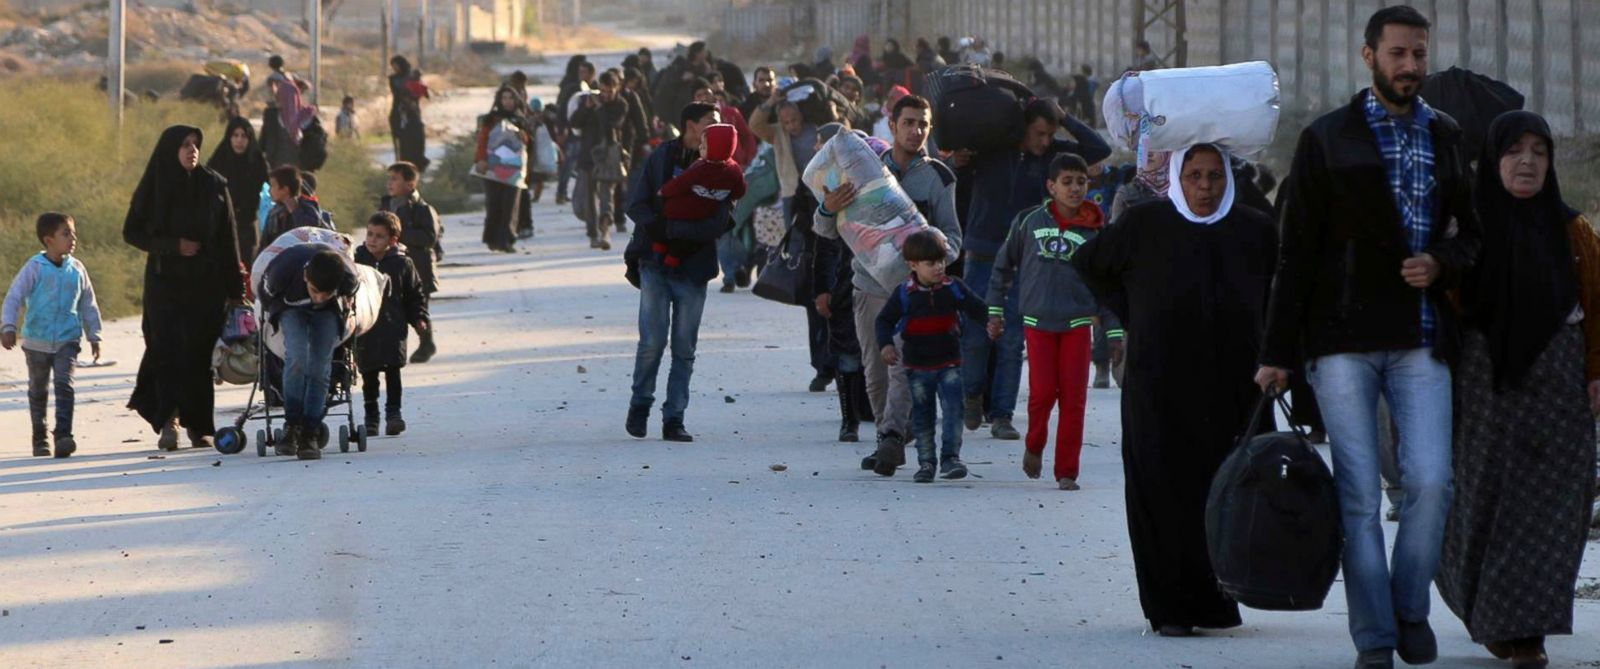 PHOTO: This photo provided by the Rumaf, shows people fleeing rebel-held eastern neighborhoods of Aleppo into the Sheikh Maqsoud area that is controlled by Kurdish fighters, Syria, Nov. 27, 2016.